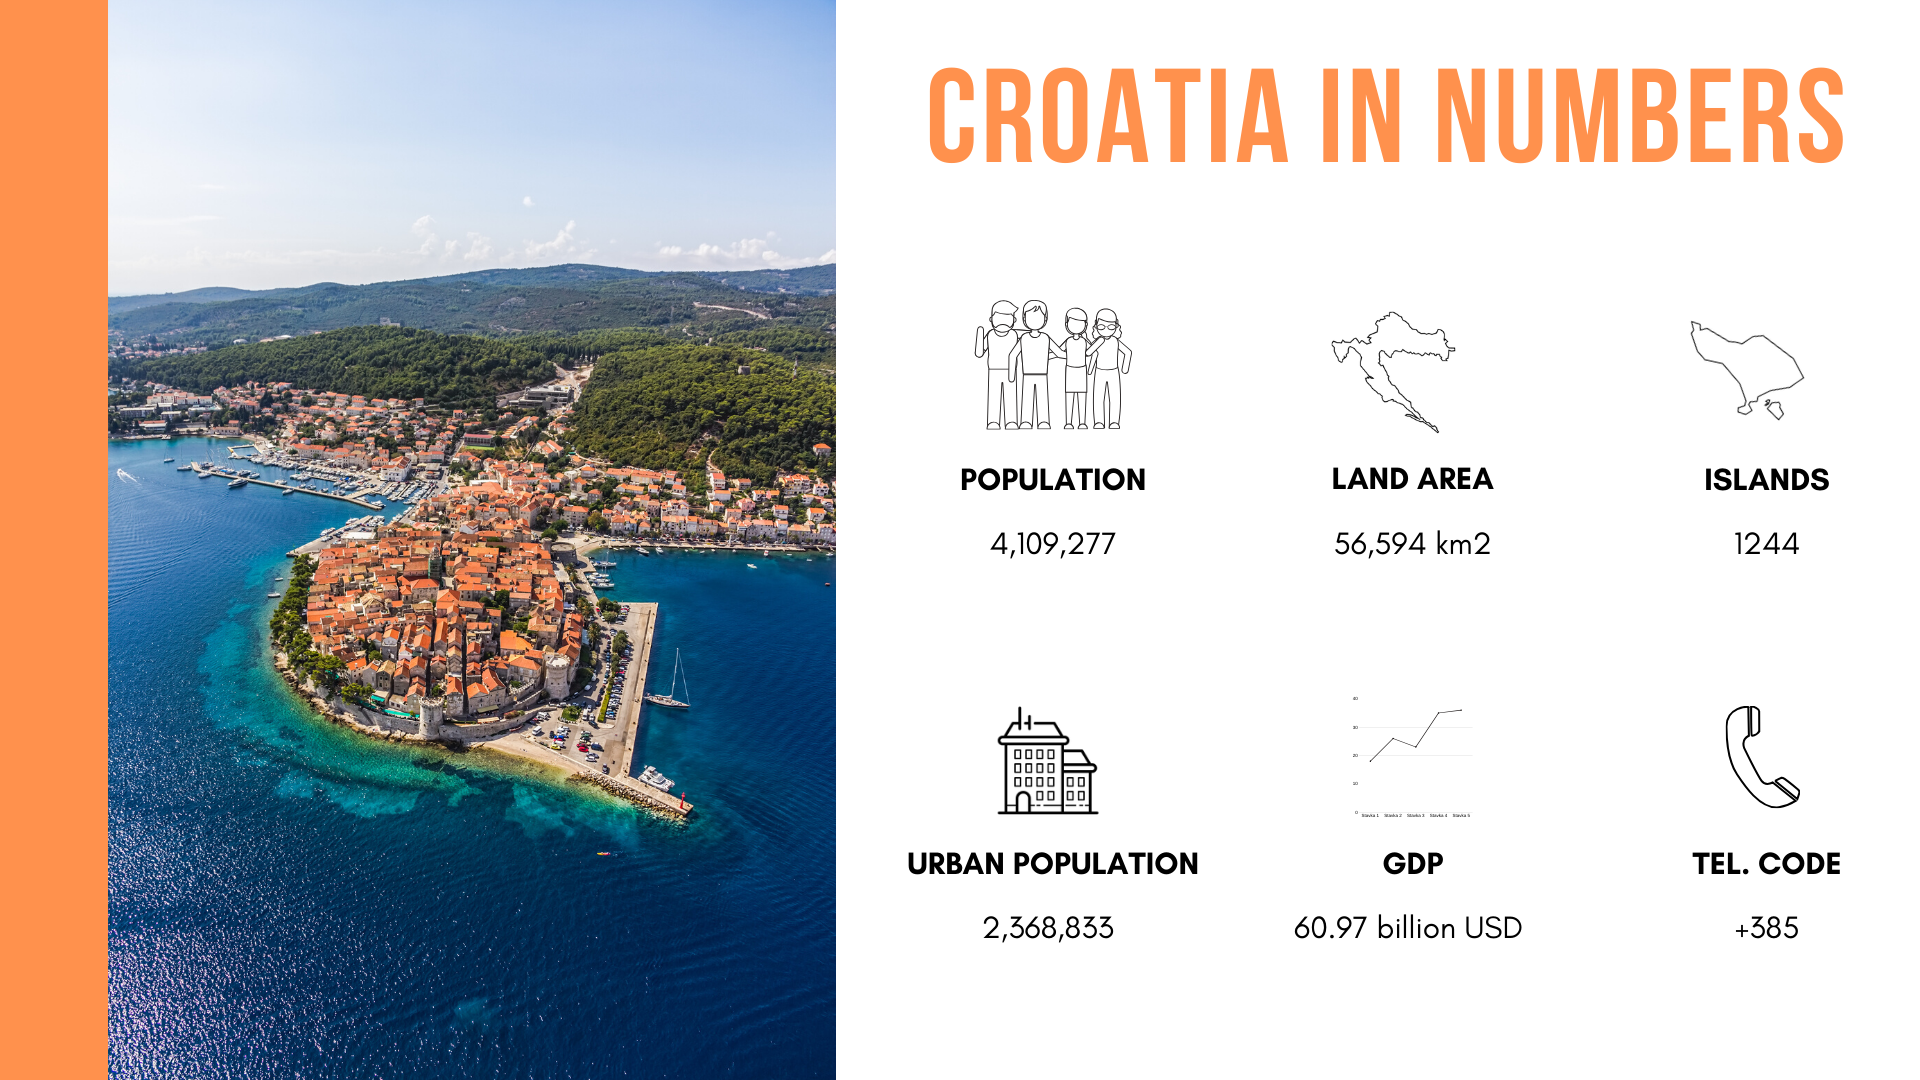 The basic information about the Republic of Croatia expressed in numbers and icons.